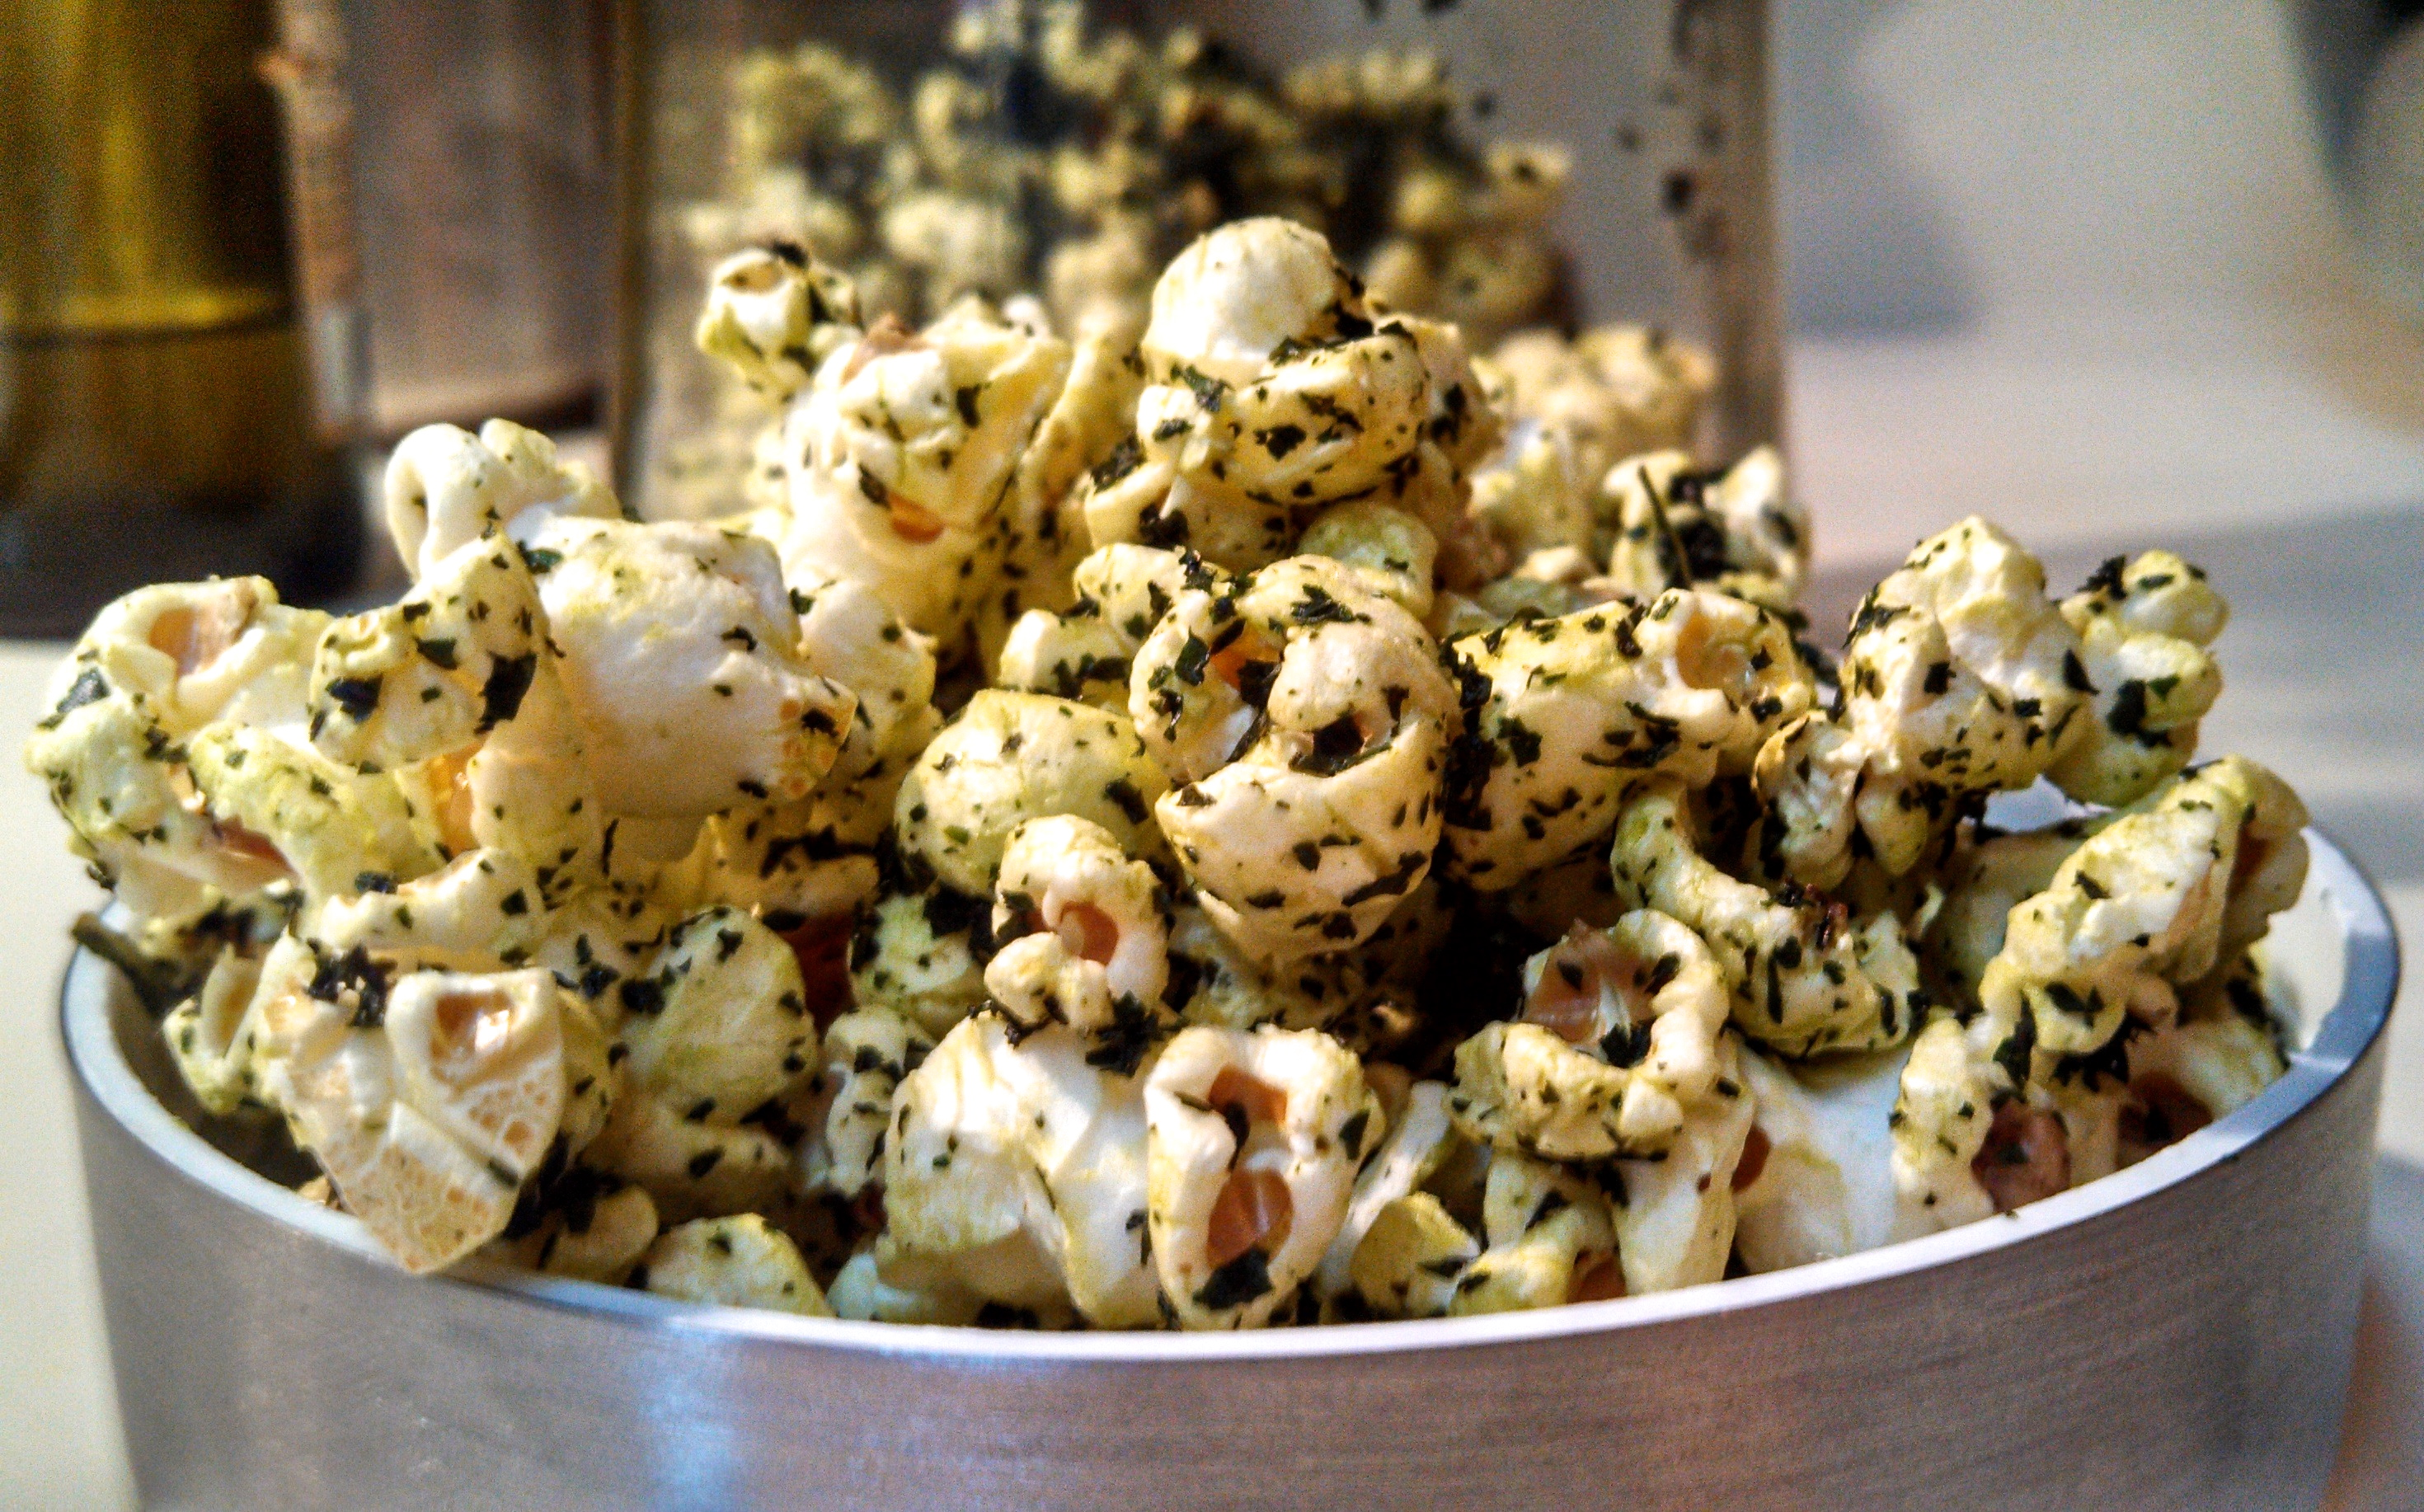 Picture of PopKale - How to Make Seasoned Popcorn With Truffle Oil Infused Kale Chip Crumbles